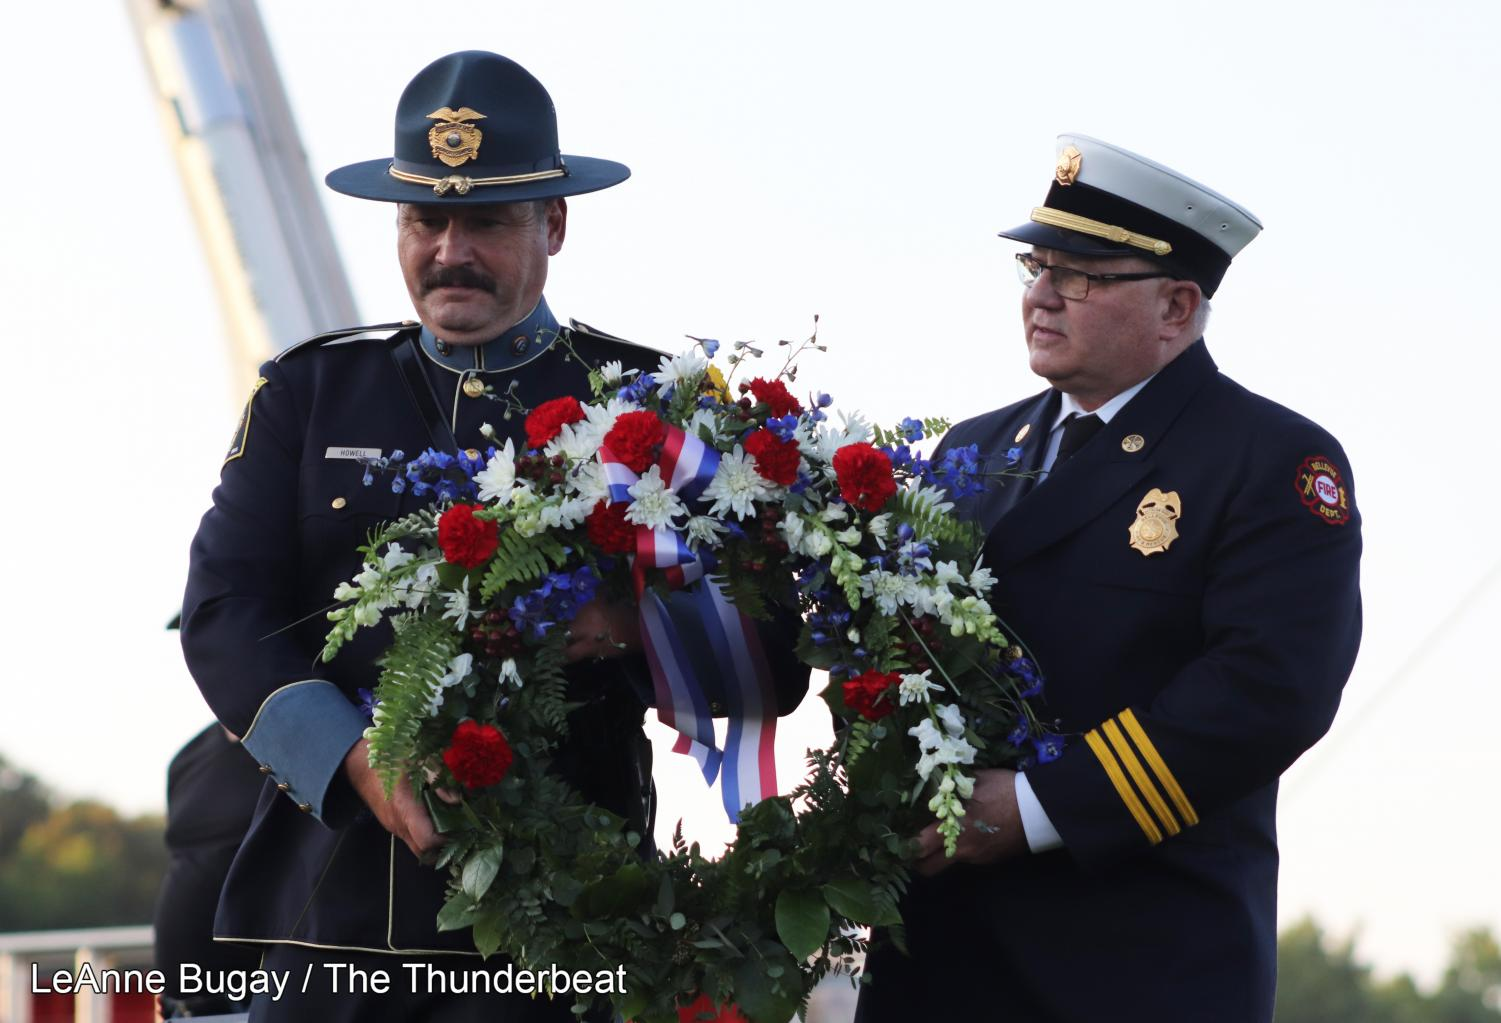 Photo Essay: Bellevue remembers fallen and wounded heroes at 9/11 Memorial Ceremony